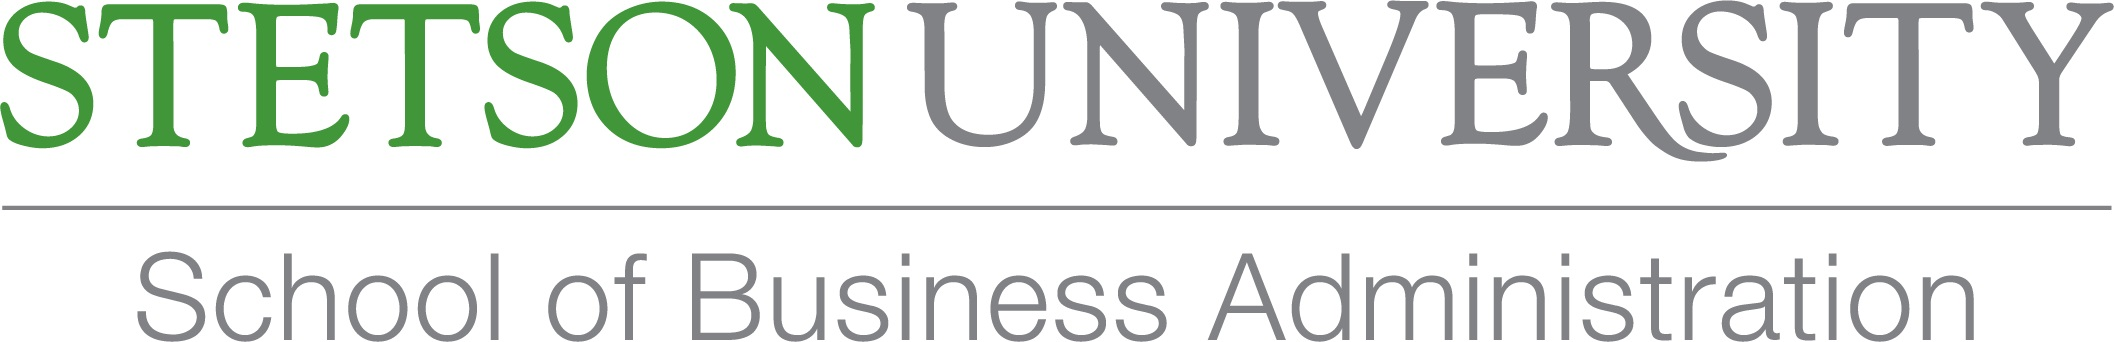 School of Business Administration Logo